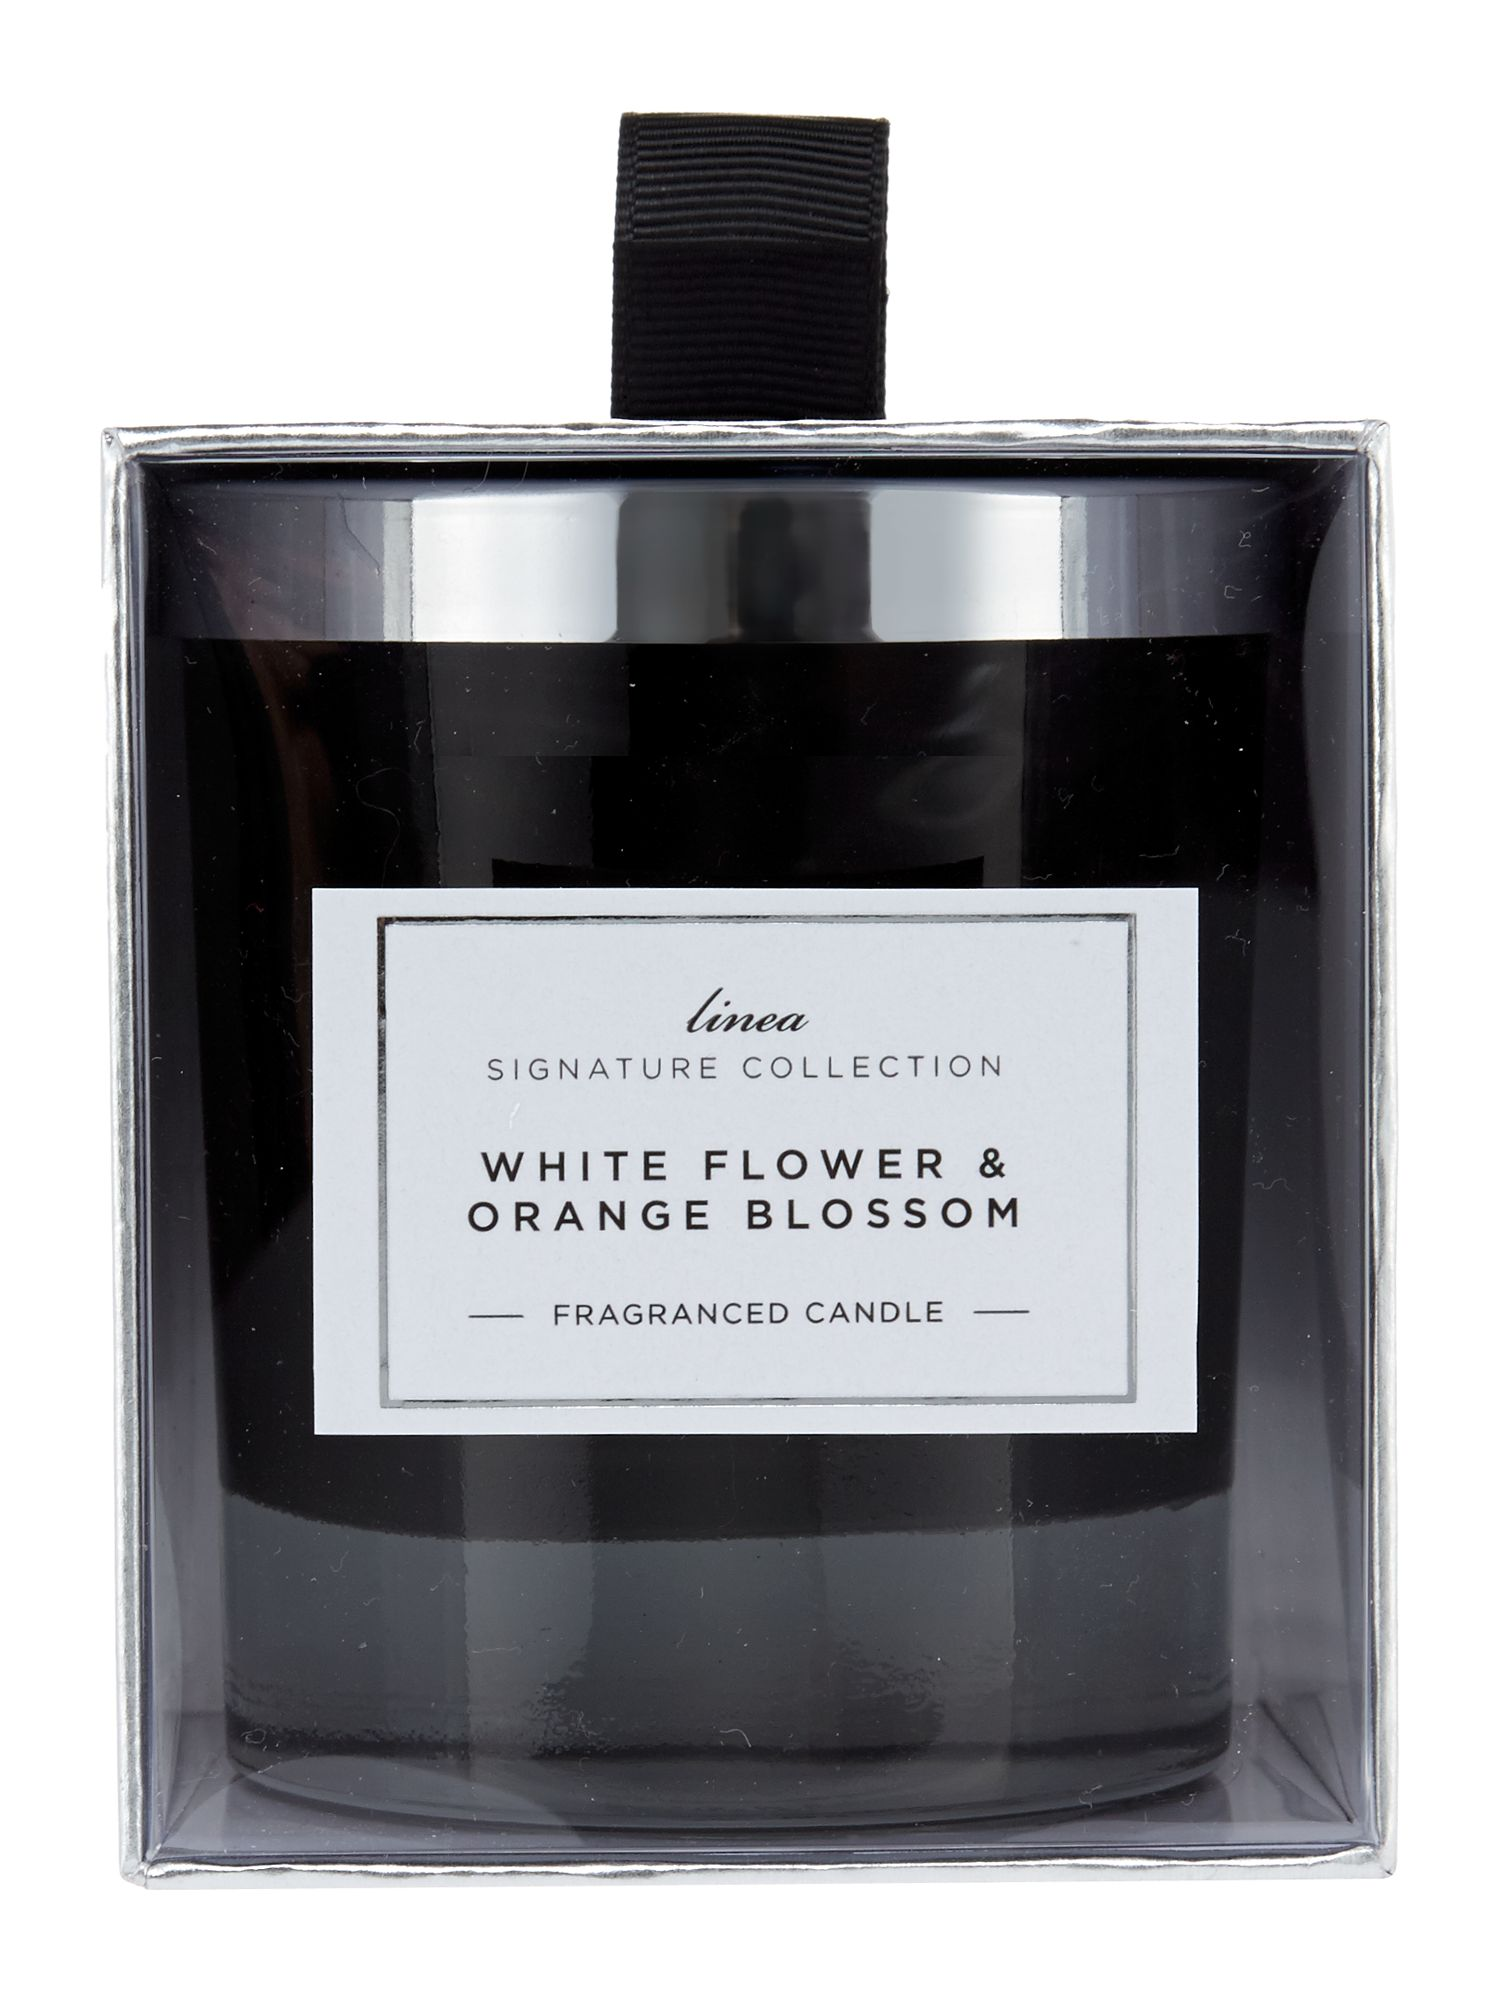 White flowers & orange blossom candle